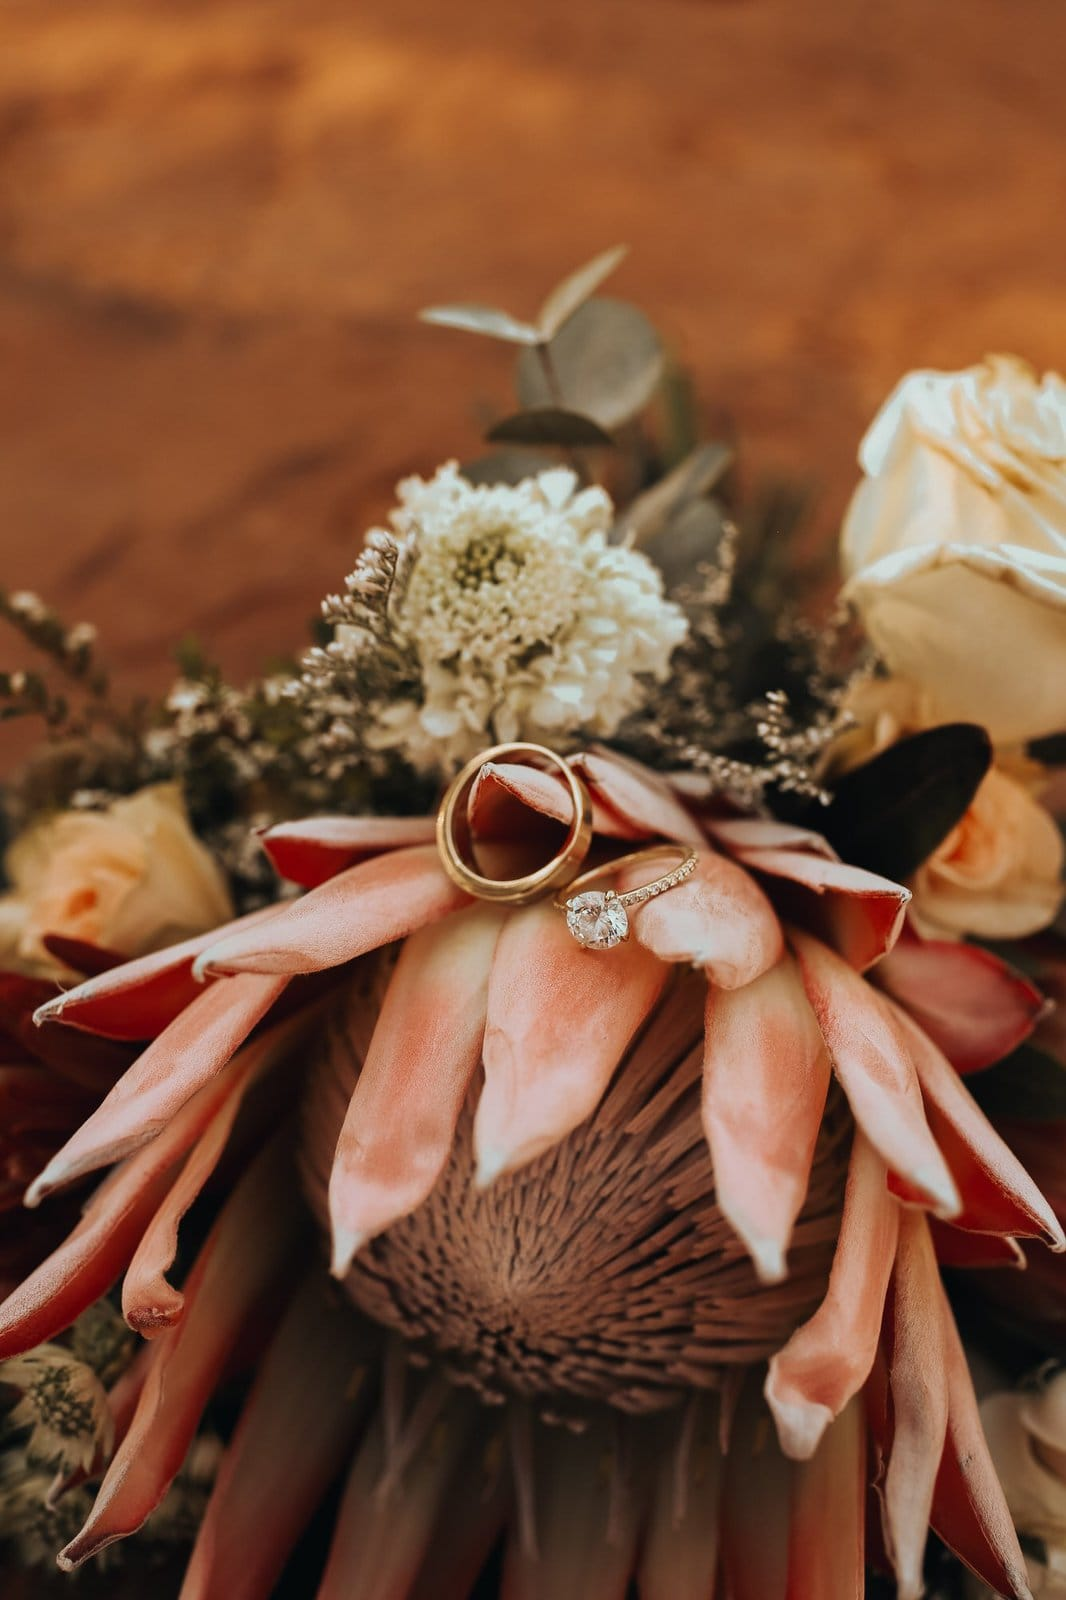 Bouquet detail shot with wedding bands.